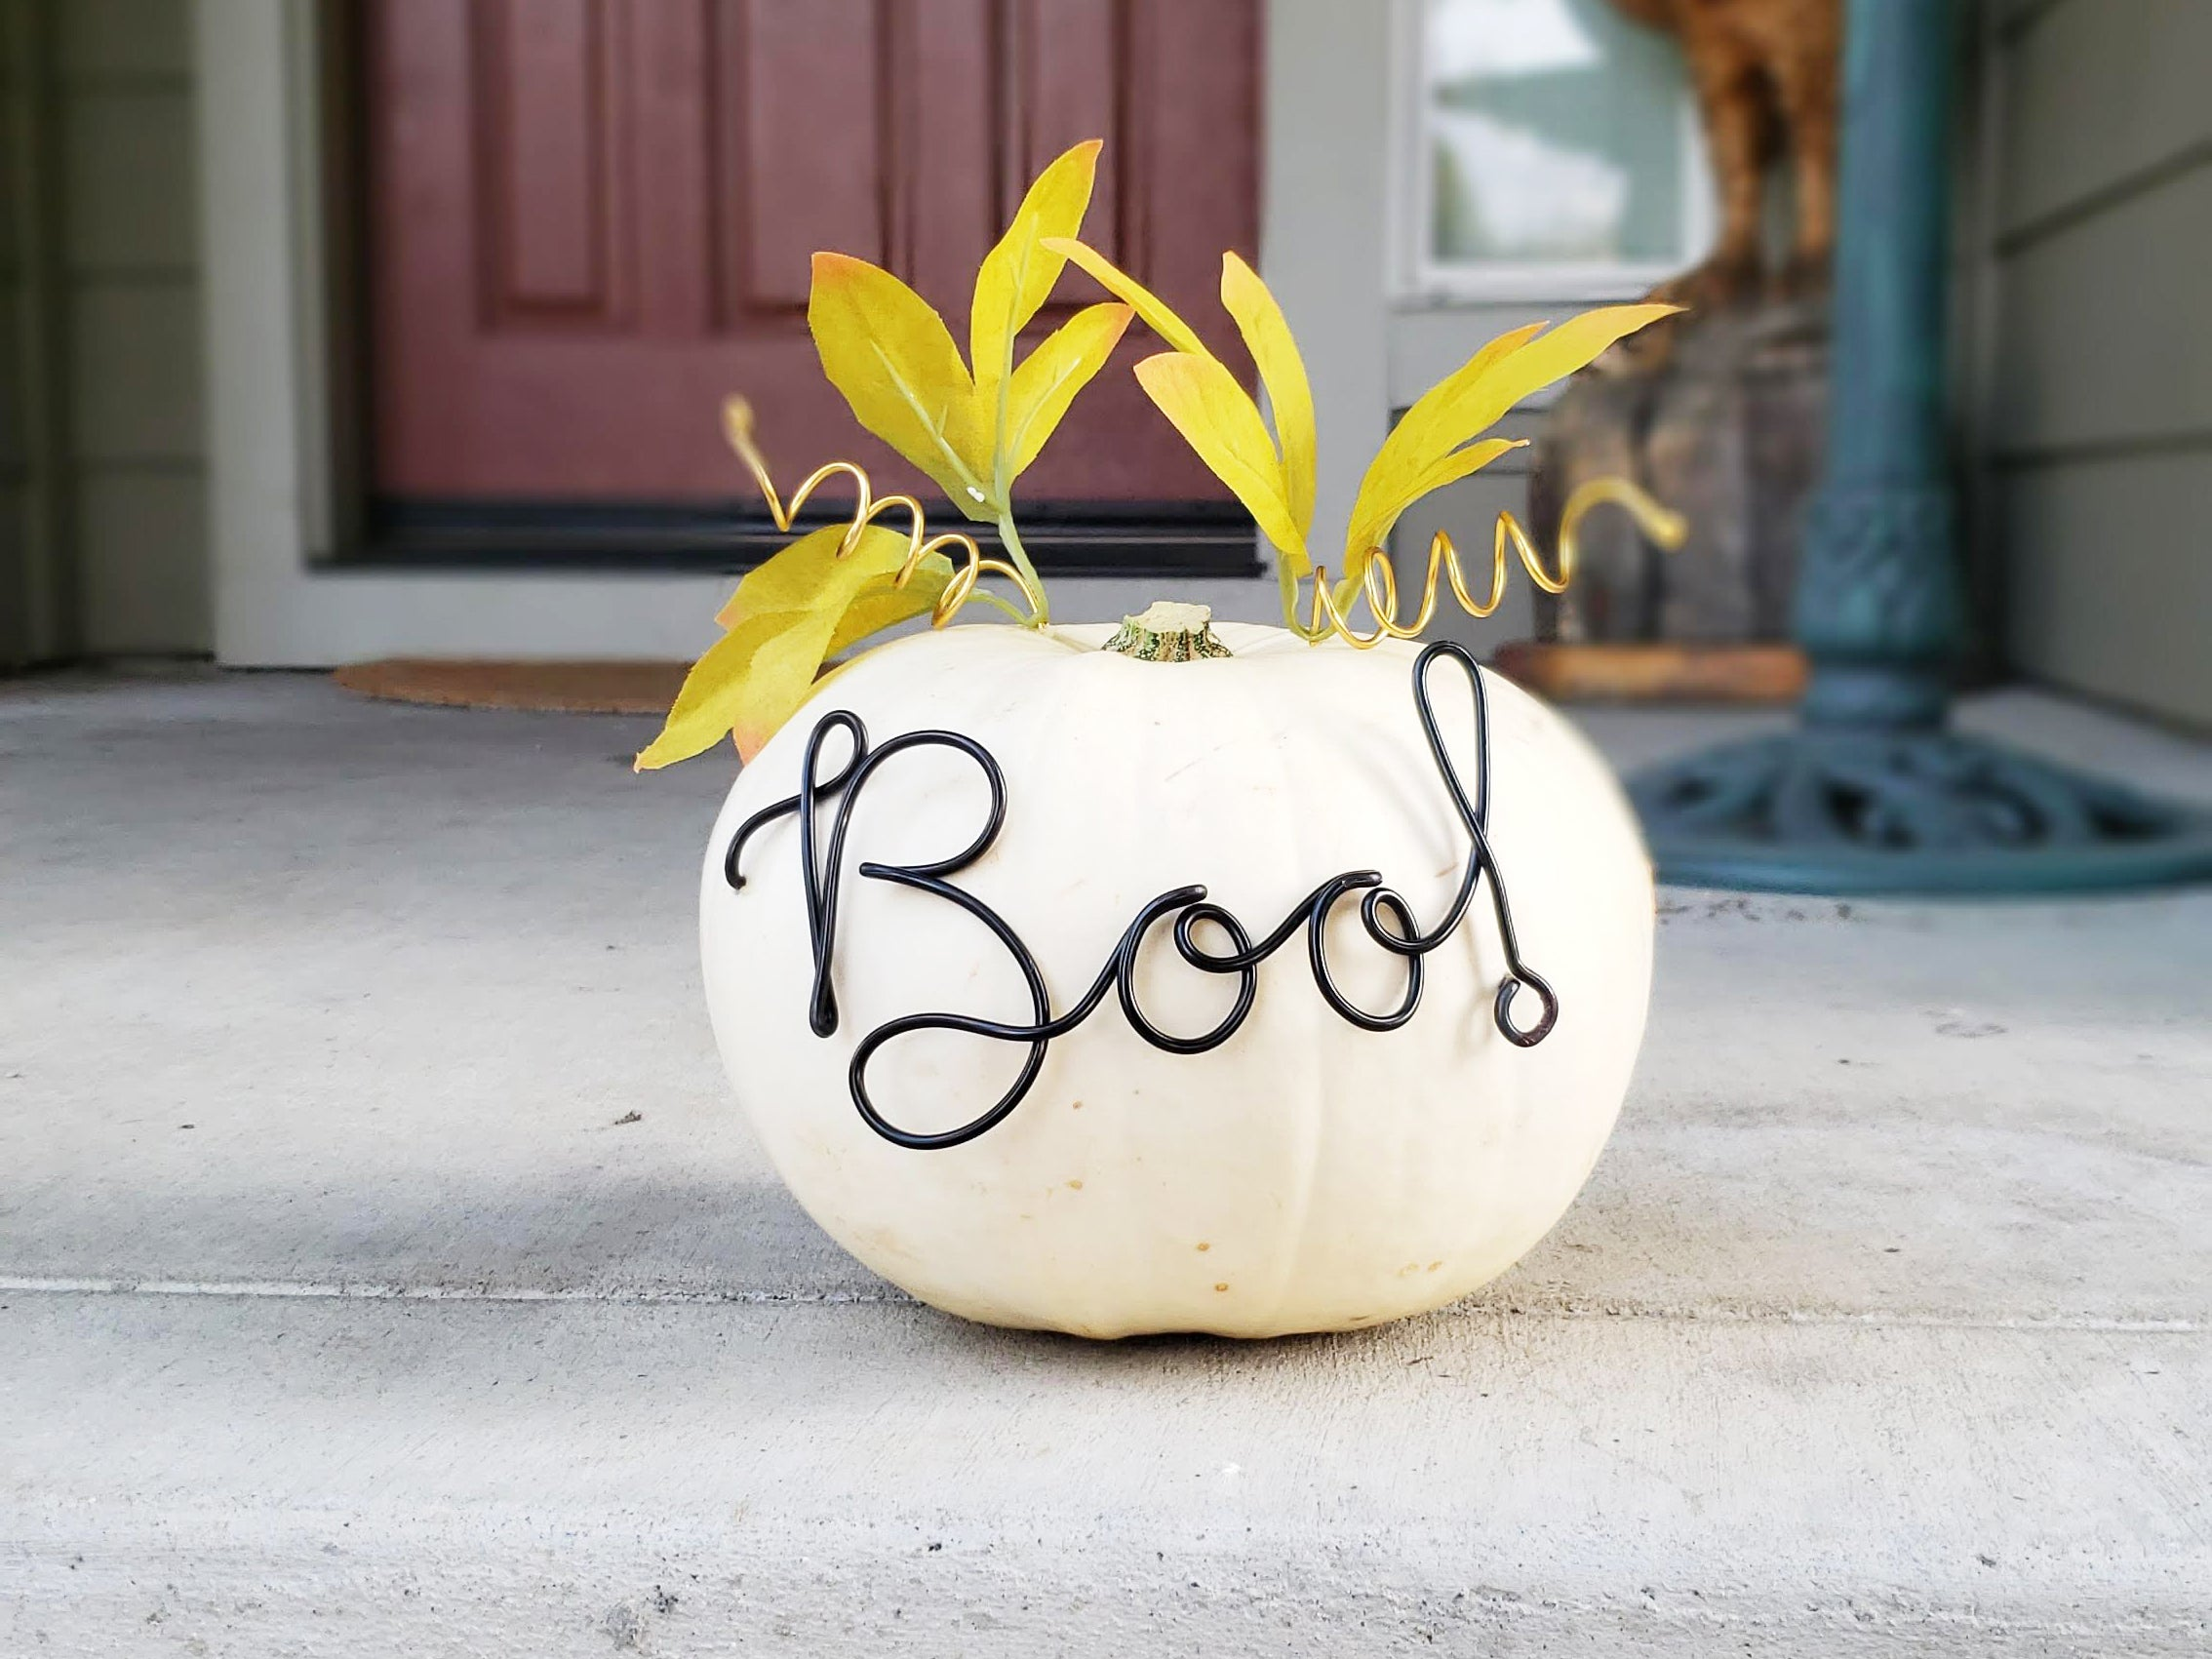 Boo! Wire Word Pumpkin Decor